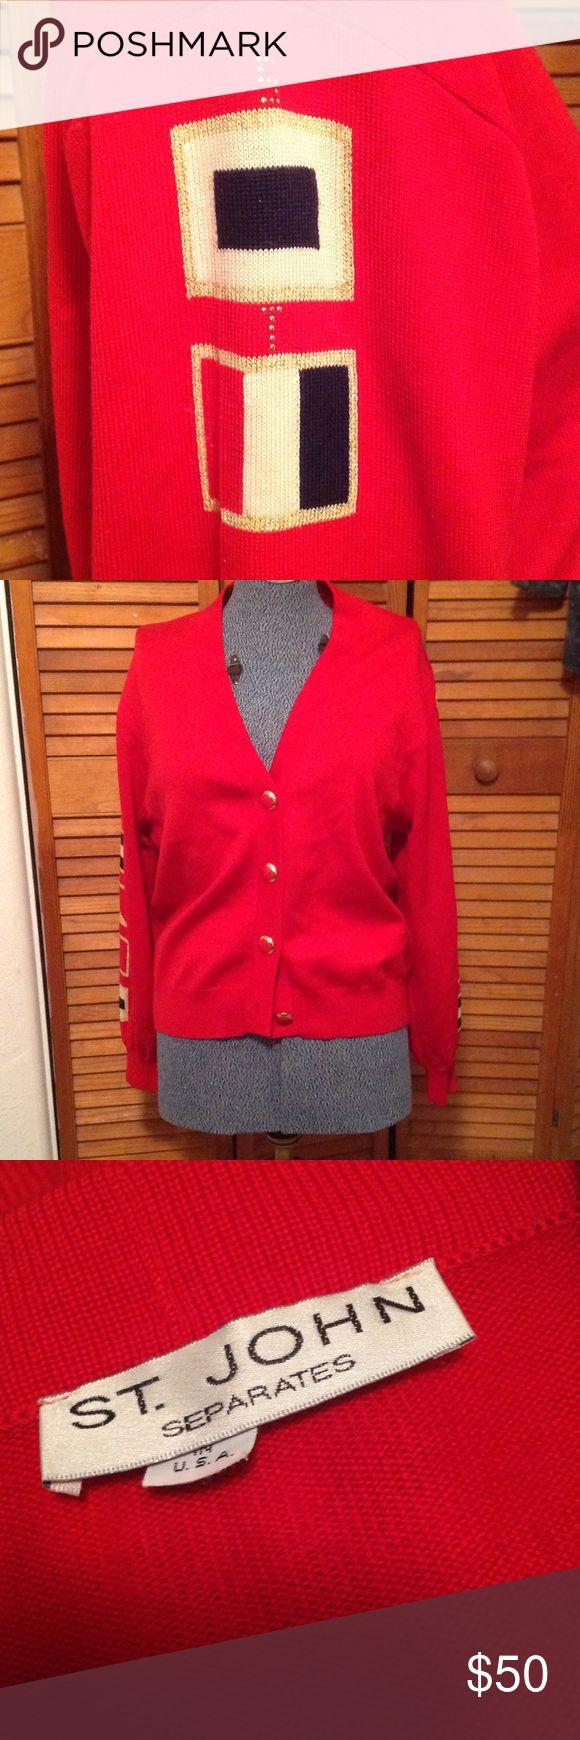 St. John nautical cardigan Vintage St. John cardigan. Naval flags down sleeve with St. John in small stones. Red buttons. St. John Sweaters Cardigans